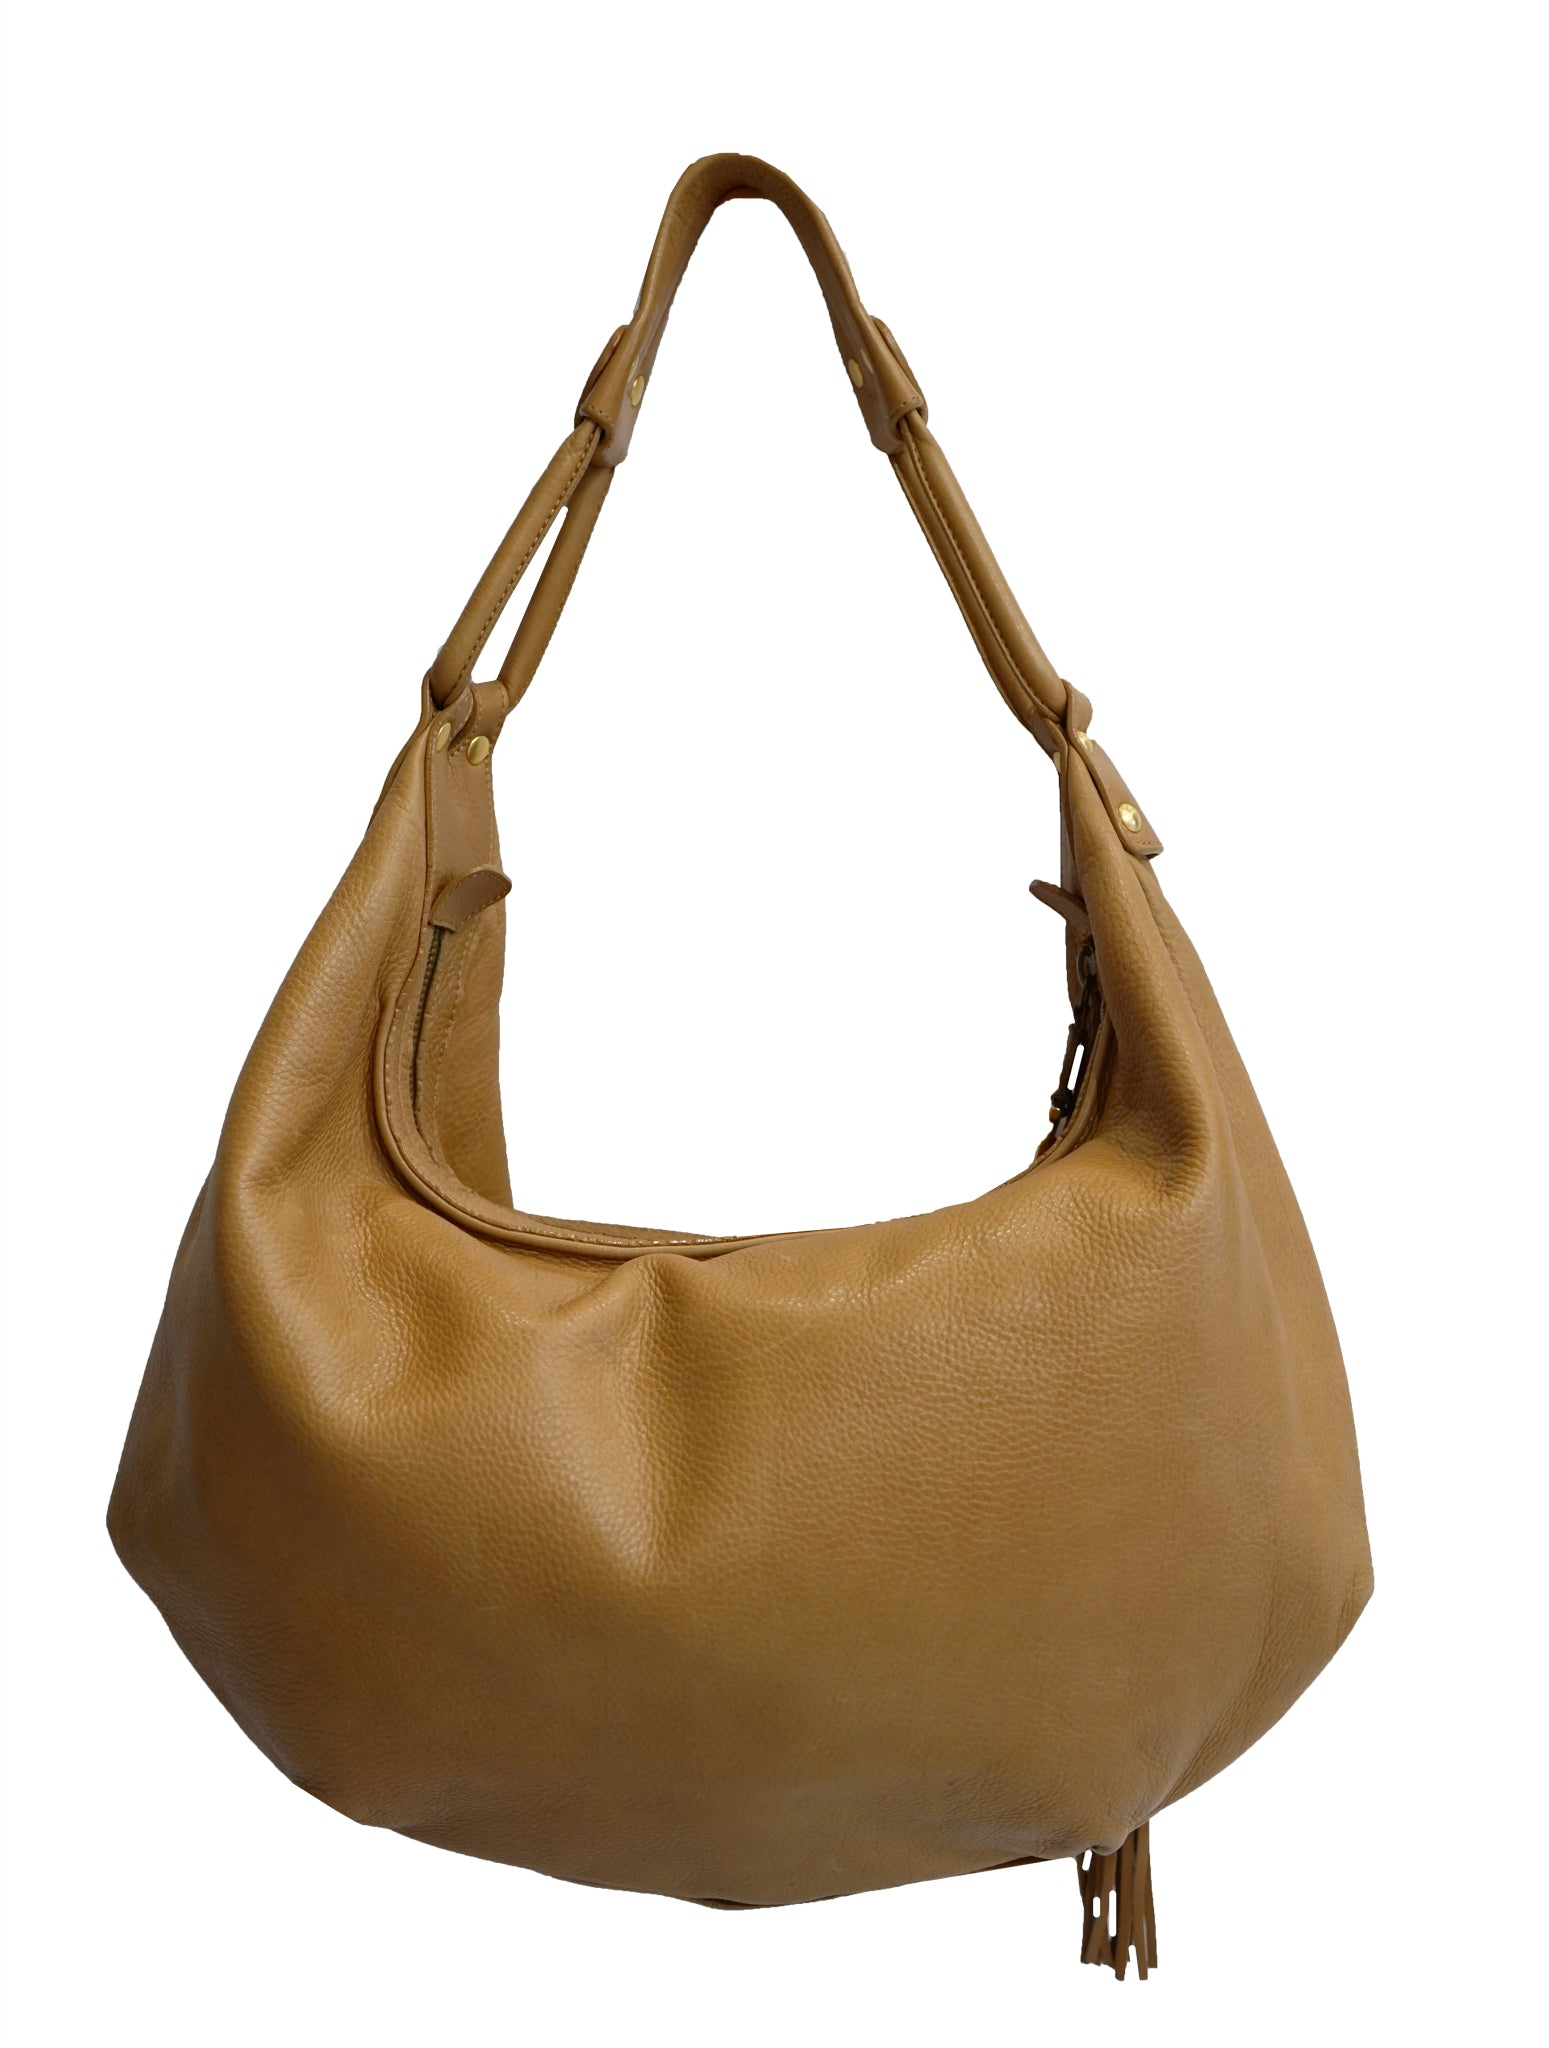 BROWN LEATHER HOBO BAG